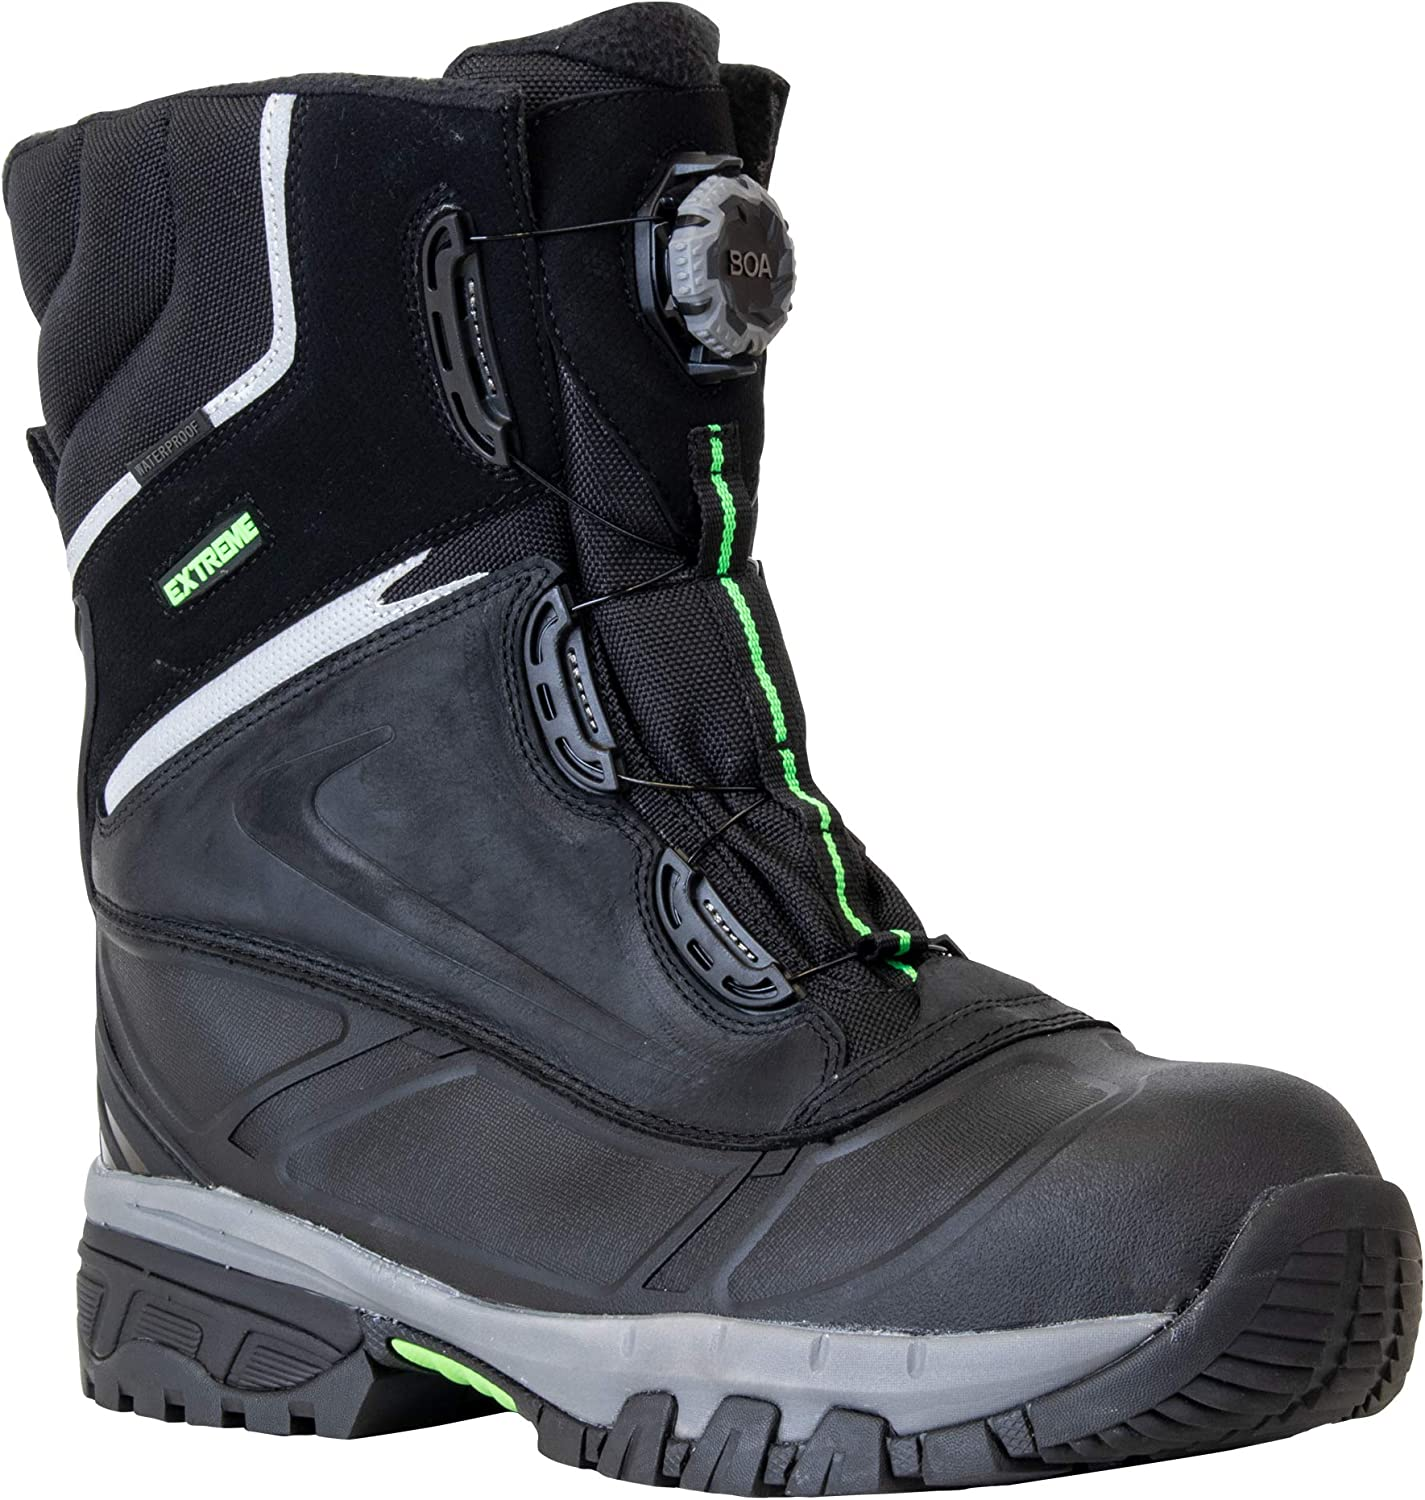 RefrigiWear Men's Waterproof Anti-Slip Extreme Pac Boots with Boa Fit System For Lacing